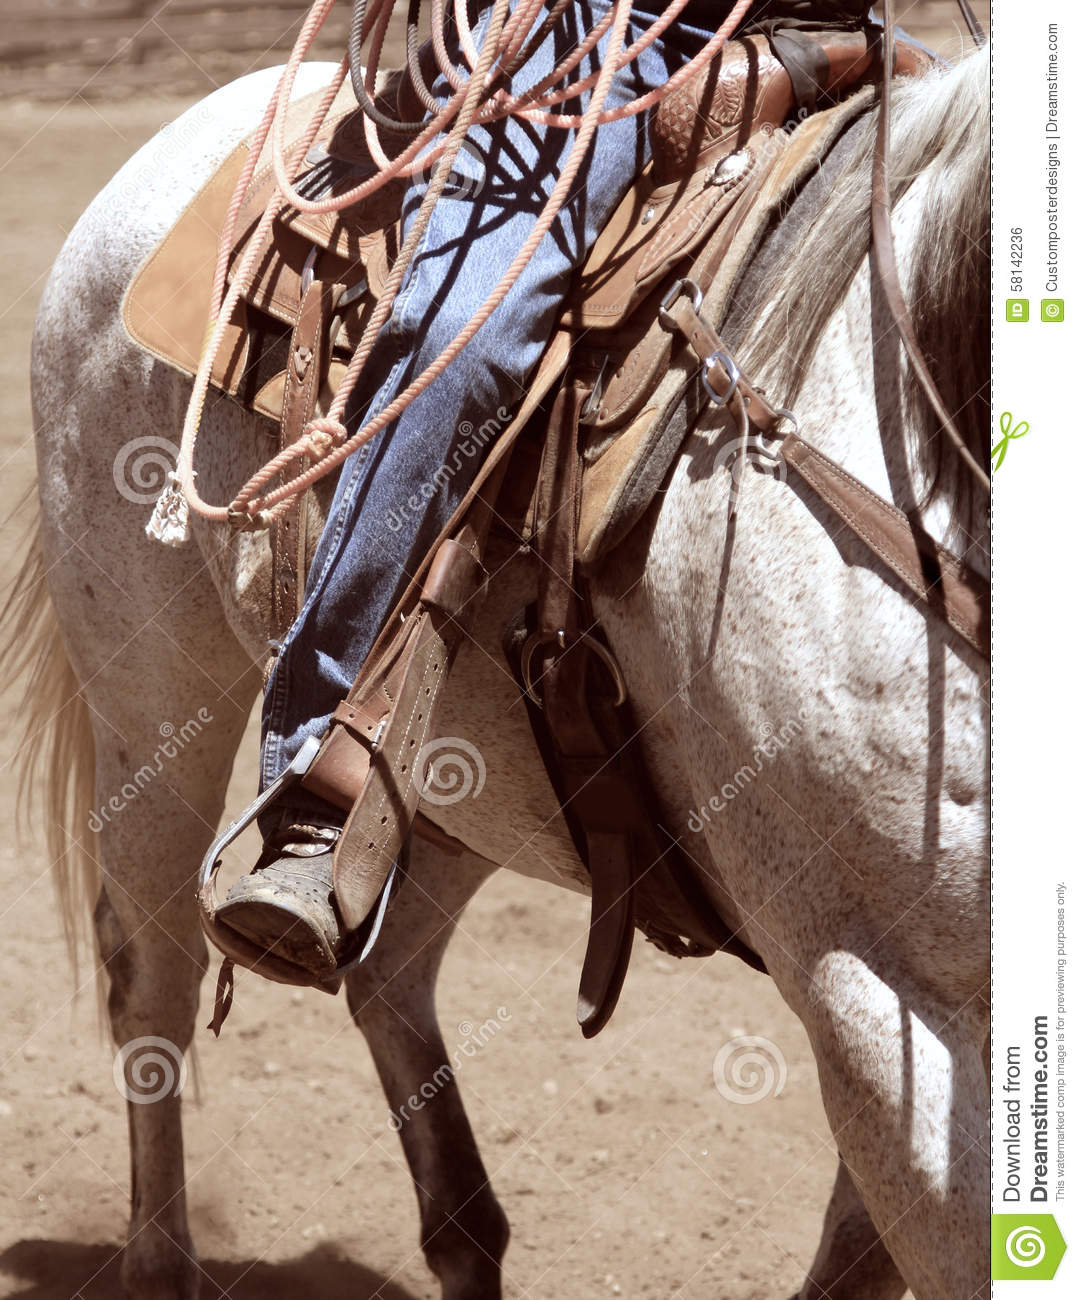 Download A cowboy riding a horse. stock photo. Image of equestrian - 58142236